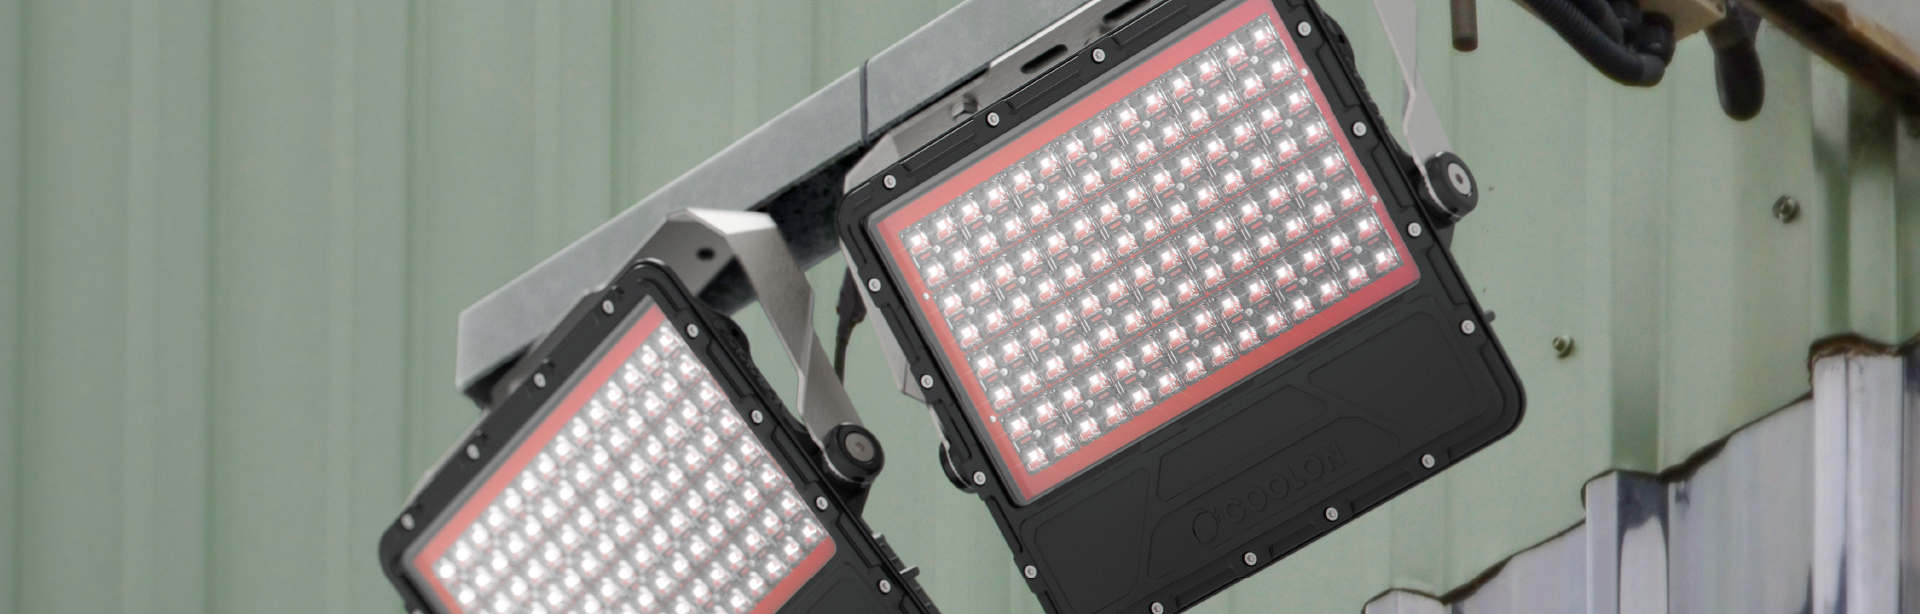 Cassidy LED mining floodlight has been specifically designed to provide ease of installation with high flexibility in optics selection and mounting position.